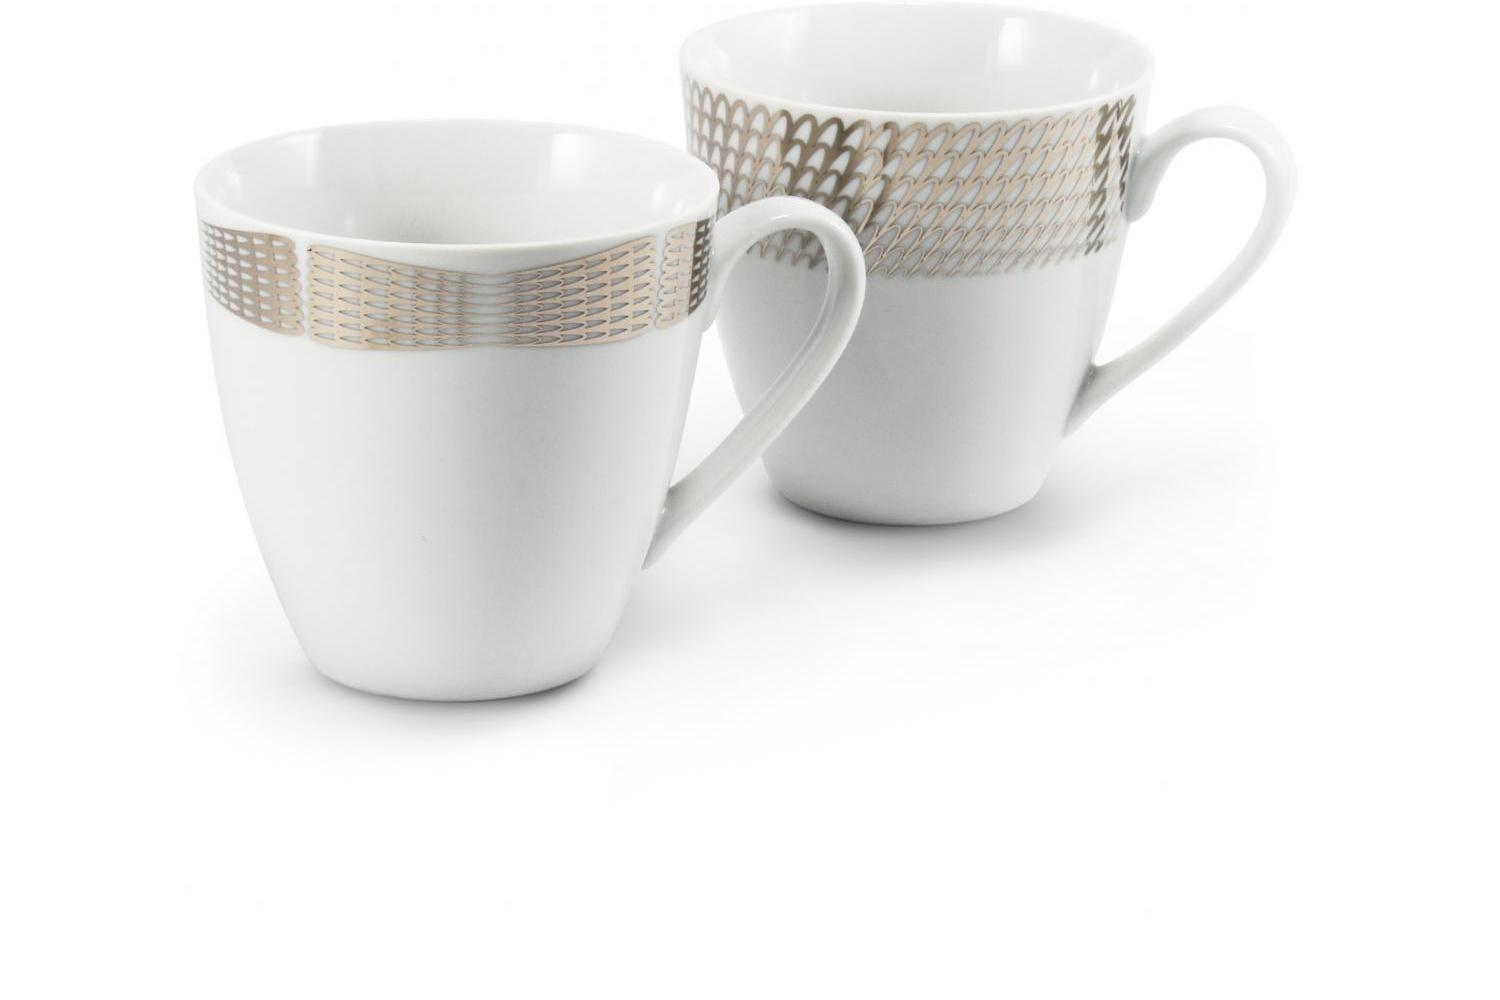 A set of two mugs Silver angel wings